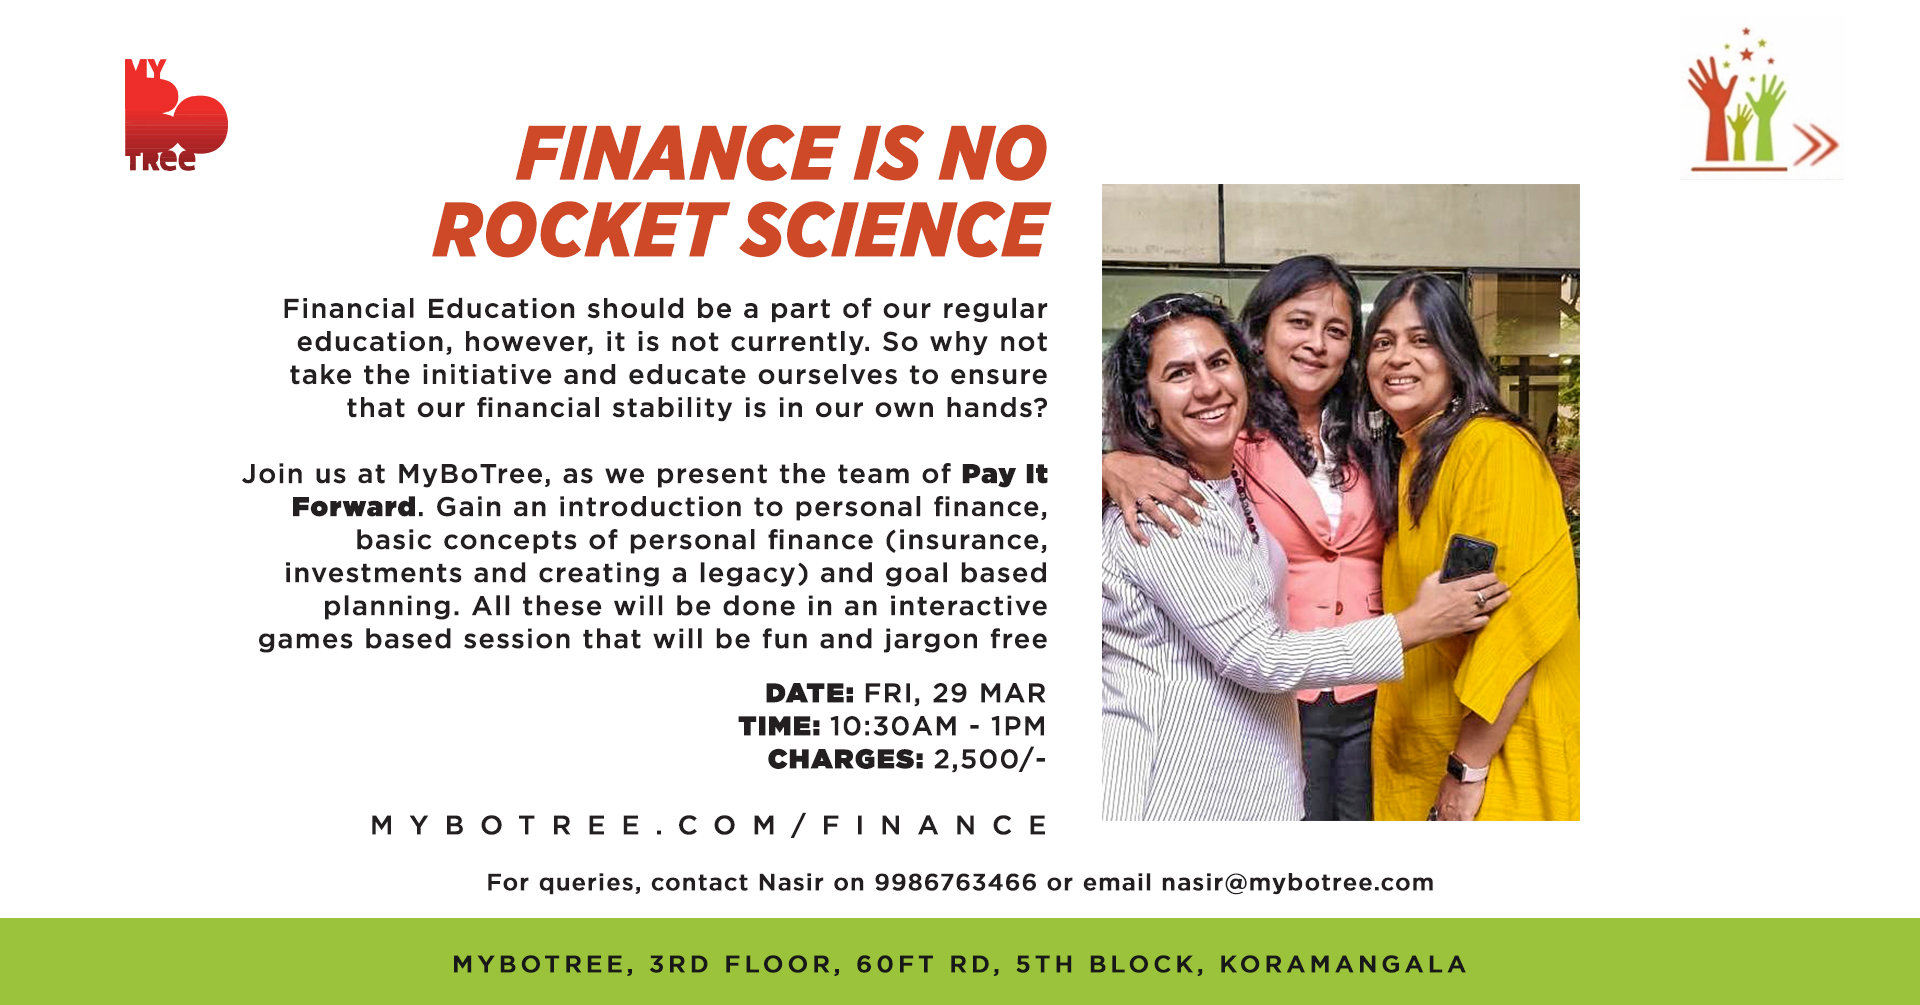 Finance is no rocket science